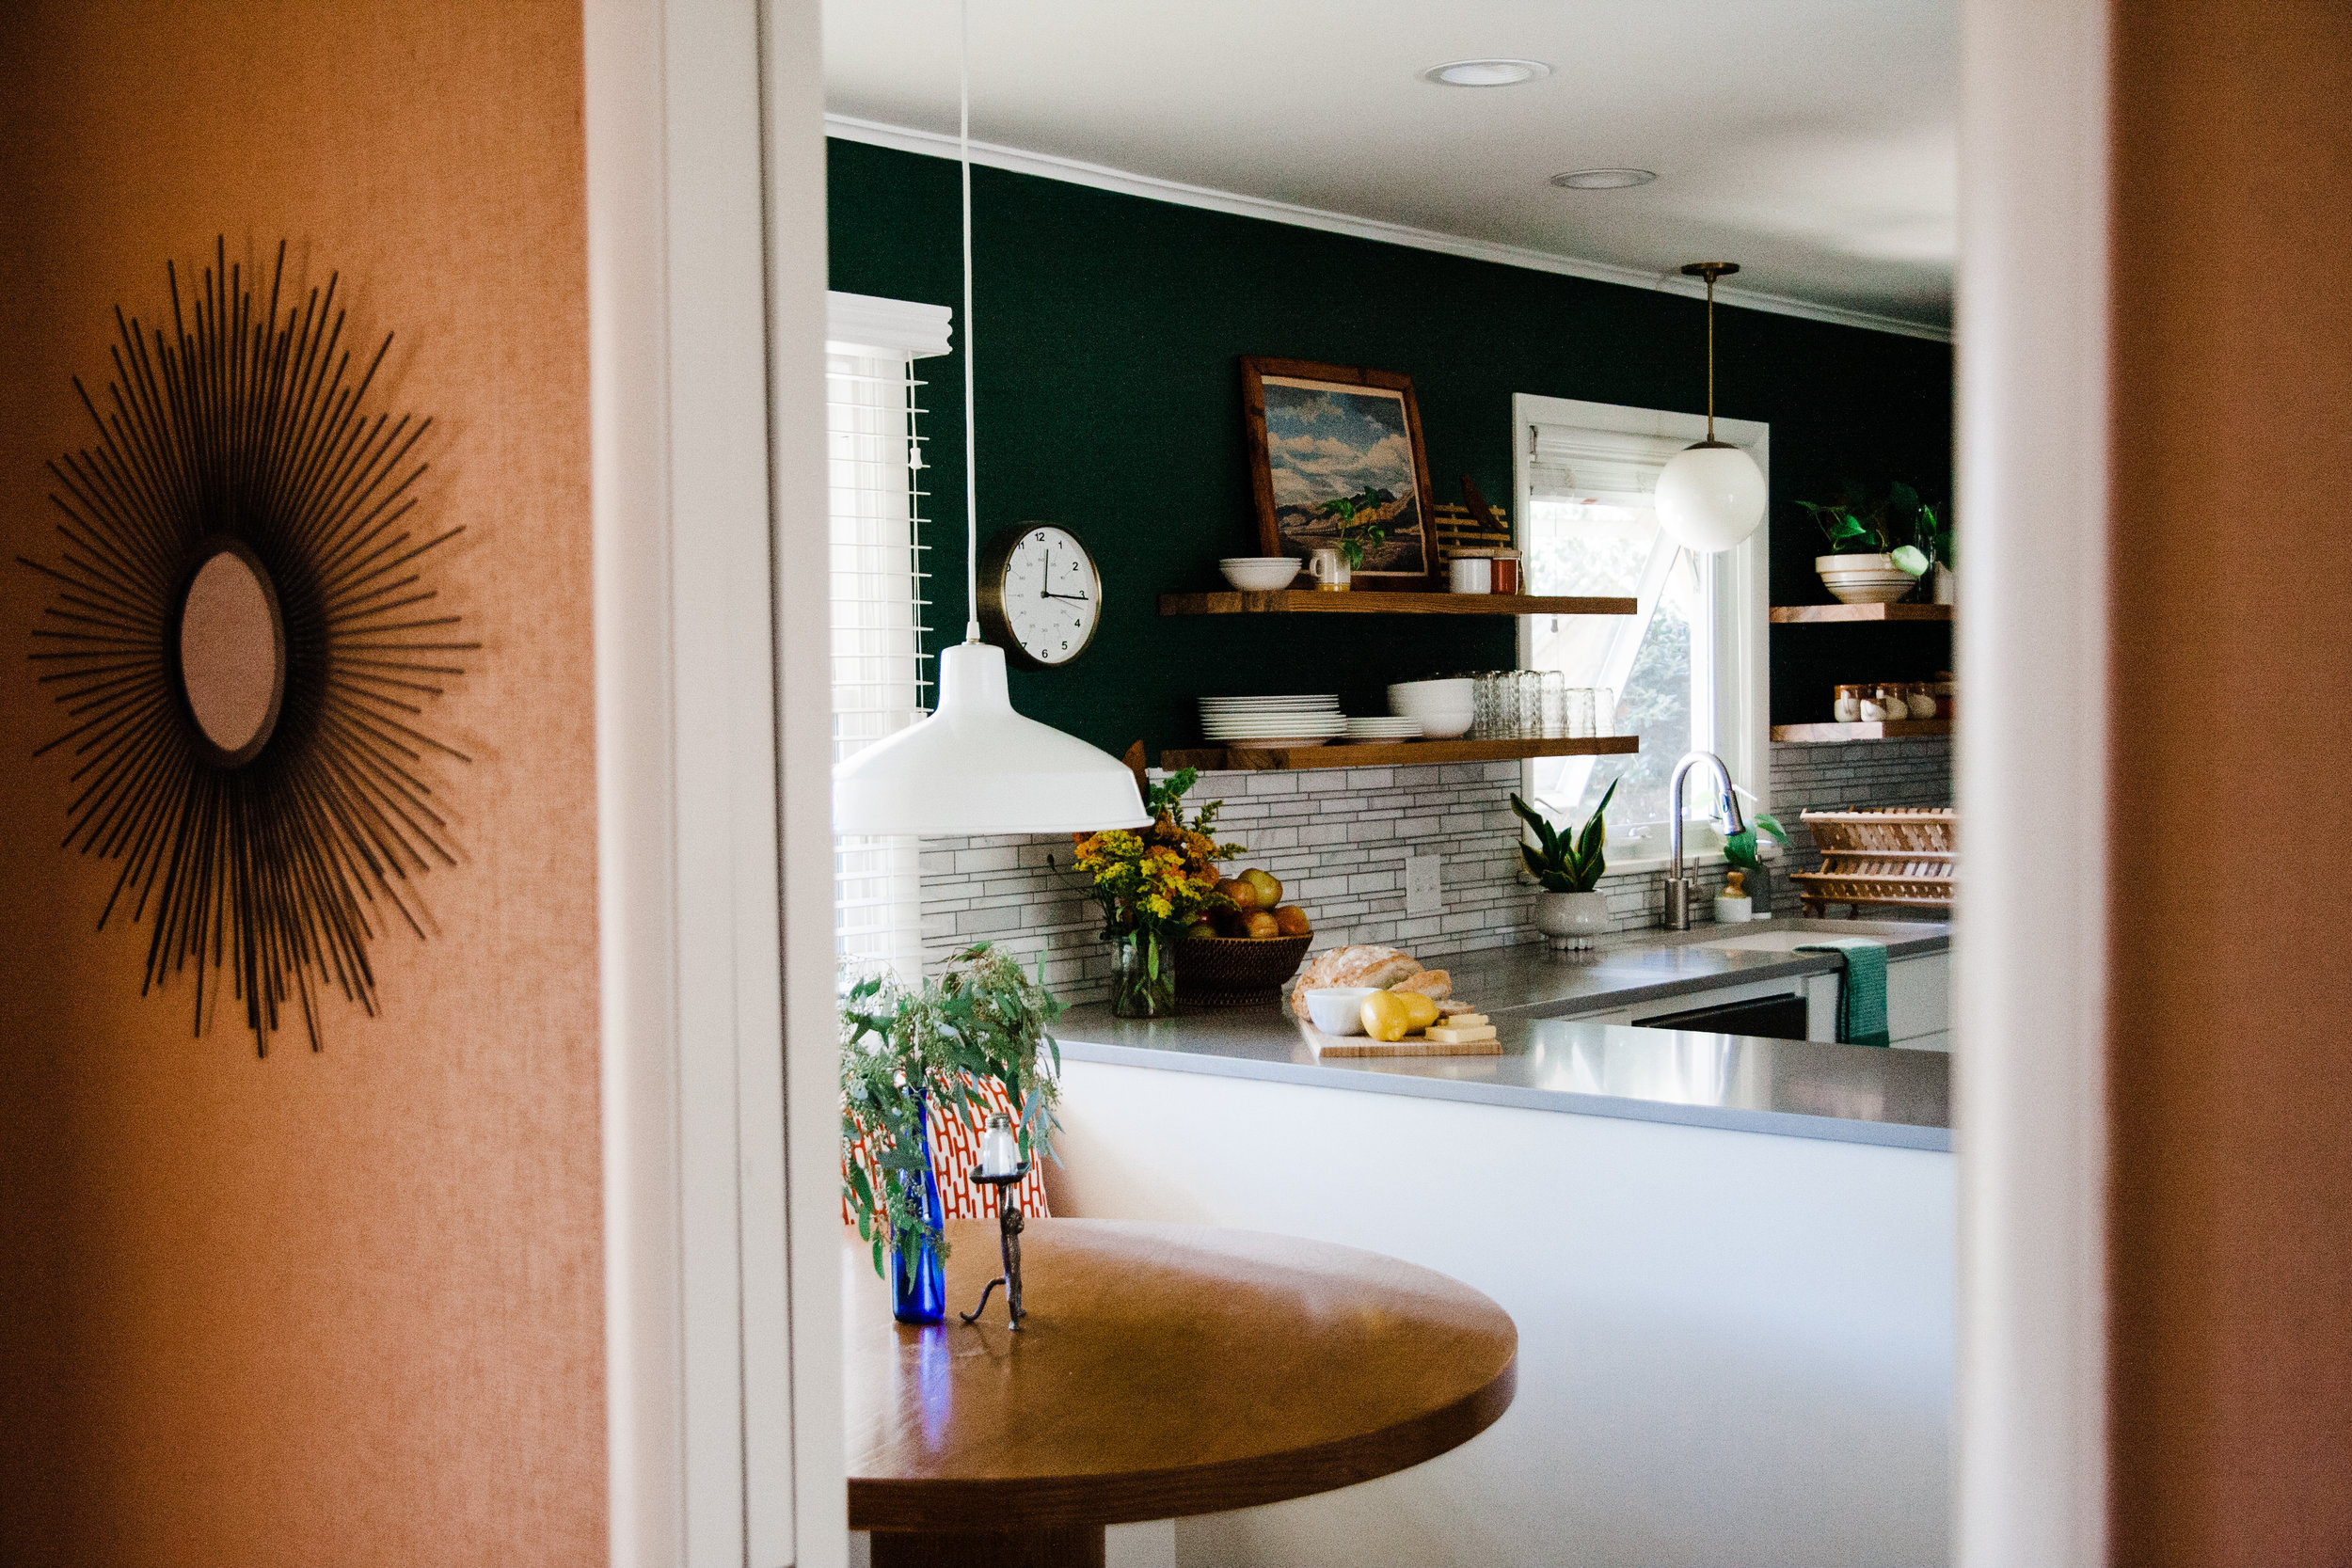 Here's a peak into the kitchen from the entry way. I painted the entryway peach to match the mudroom (on the other end of the kitchen).